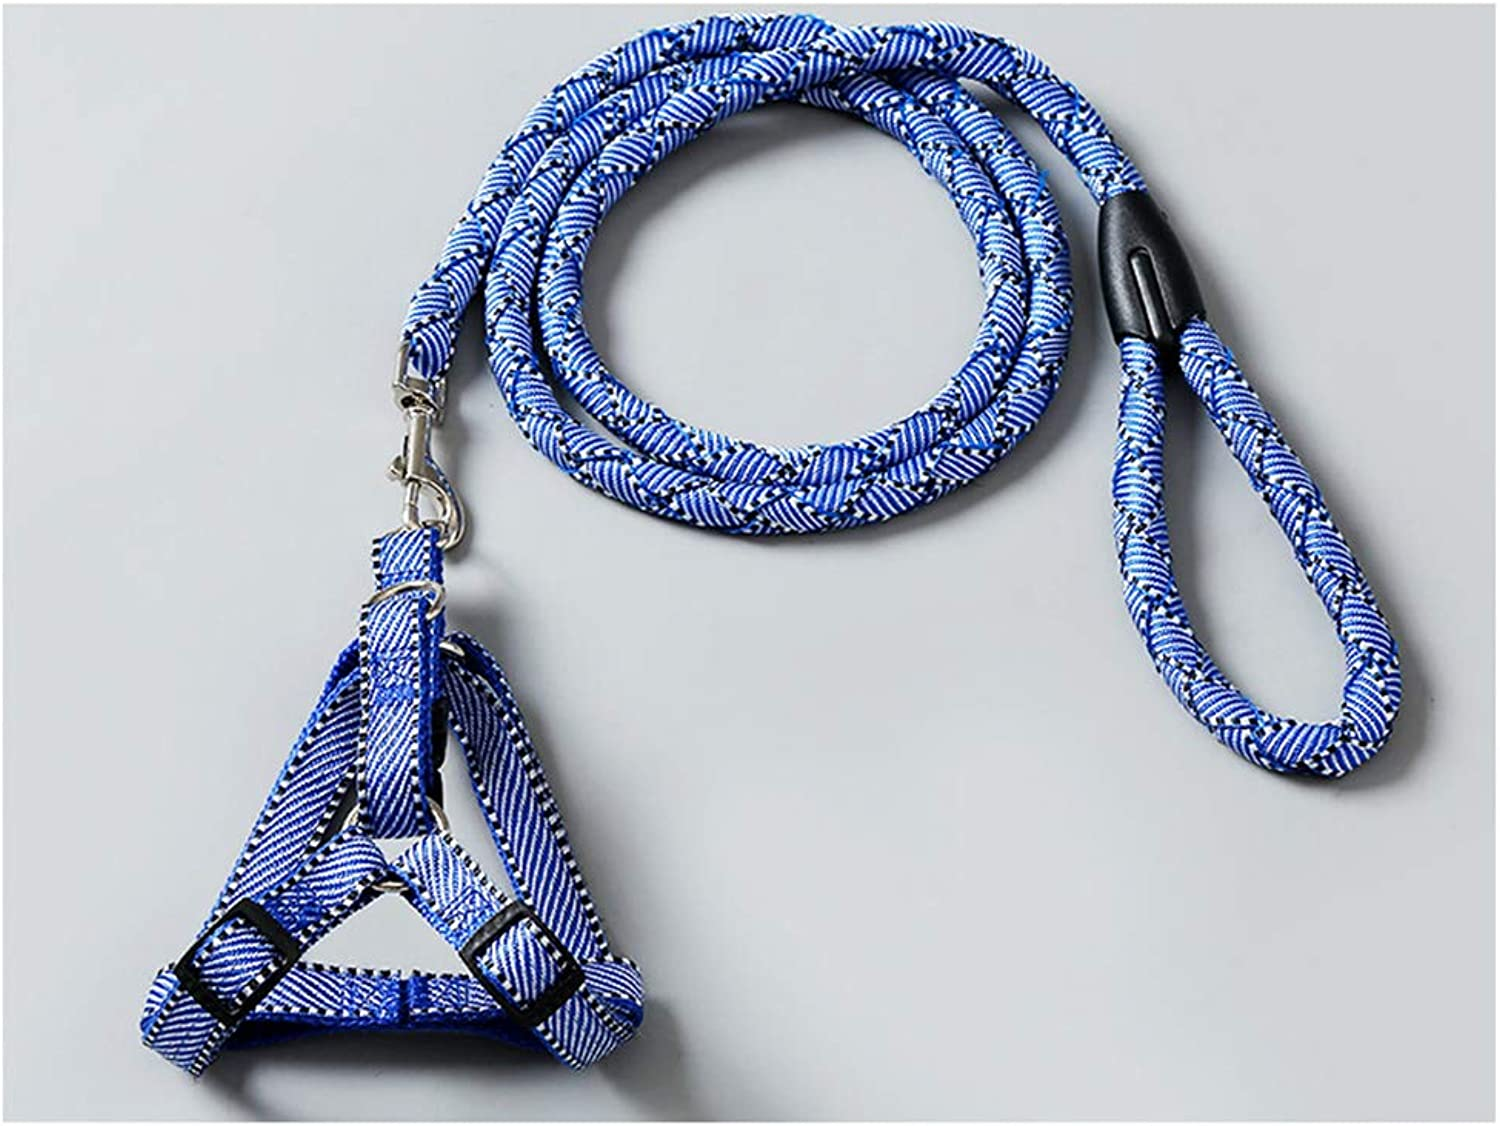 OPPALE Pet Leash HandWoven Dog Leash Rope Chest Strap Dog Leash Dog Chain Small Dog Puppy Pet Supplies Stretchable Dog pet Leash (color   bluee, Size   L12.5kg)